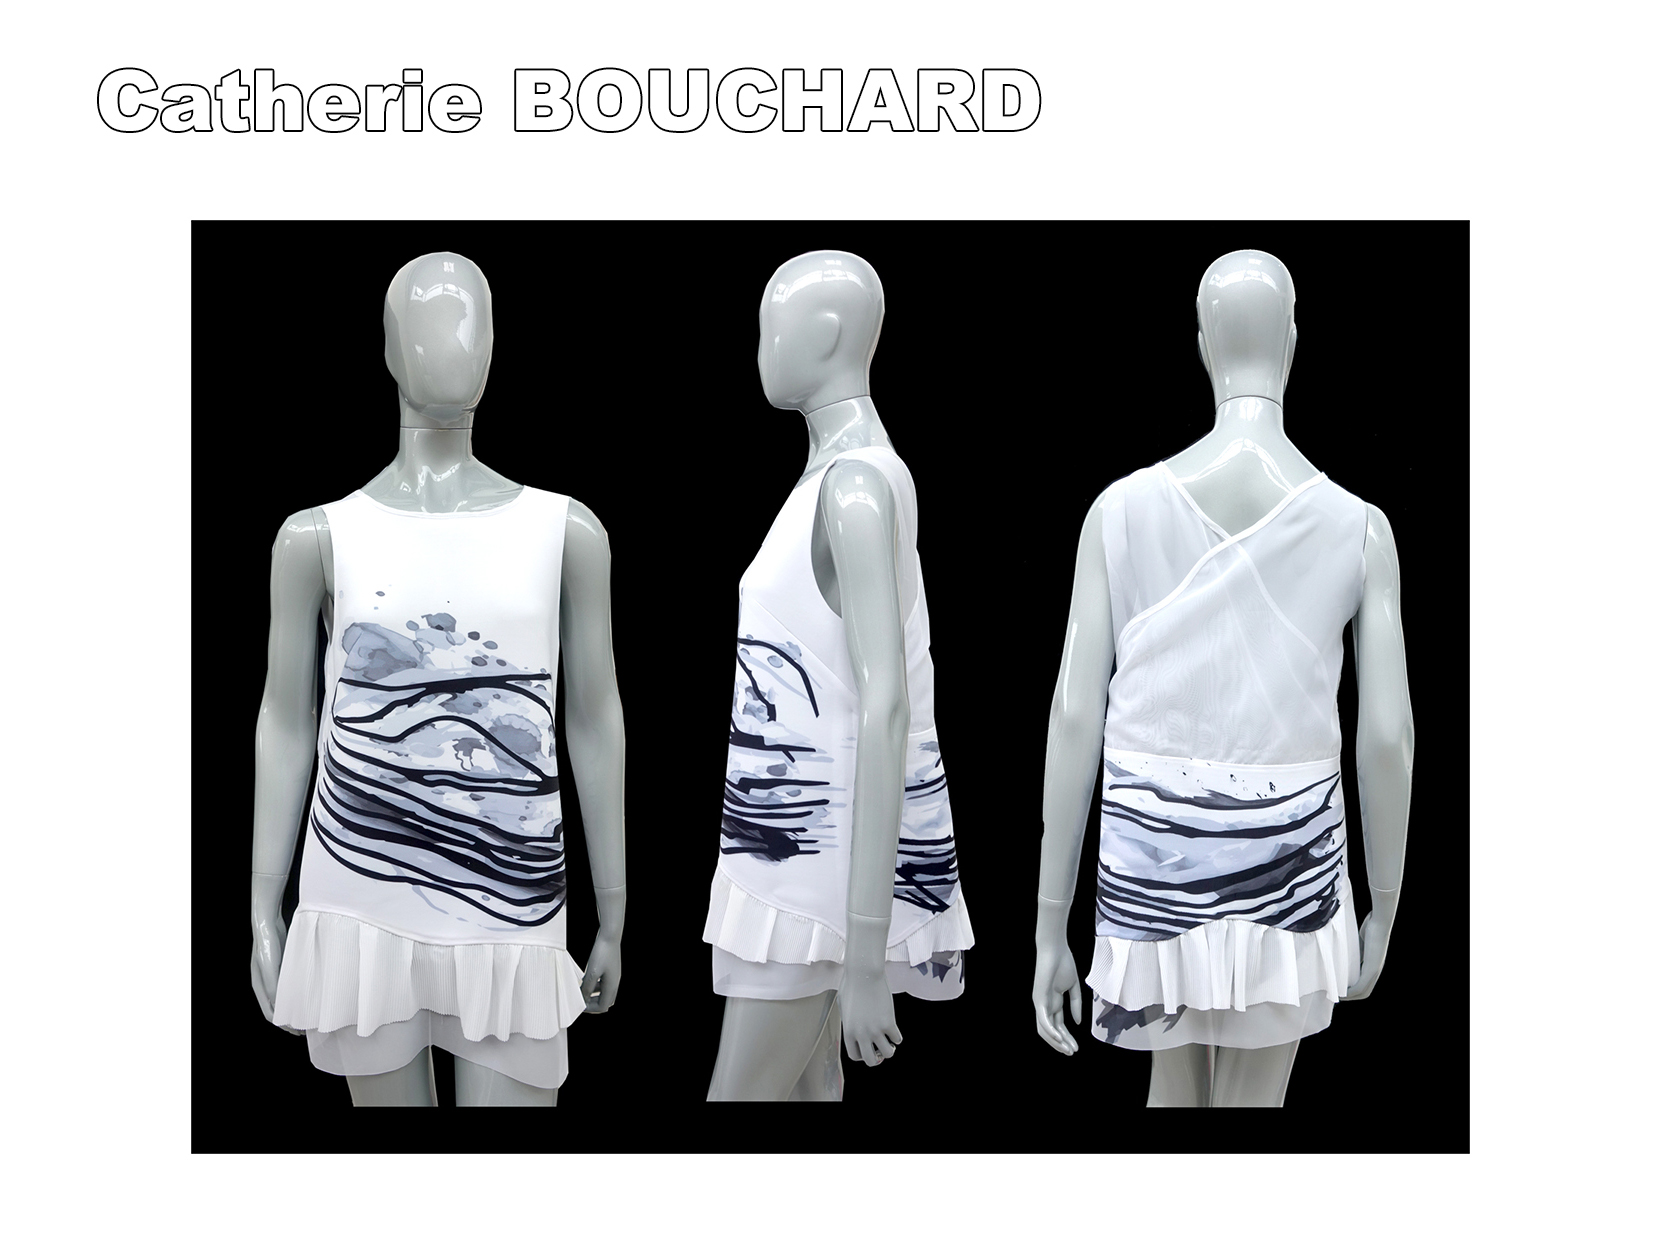 88_Catherie Bouchard1